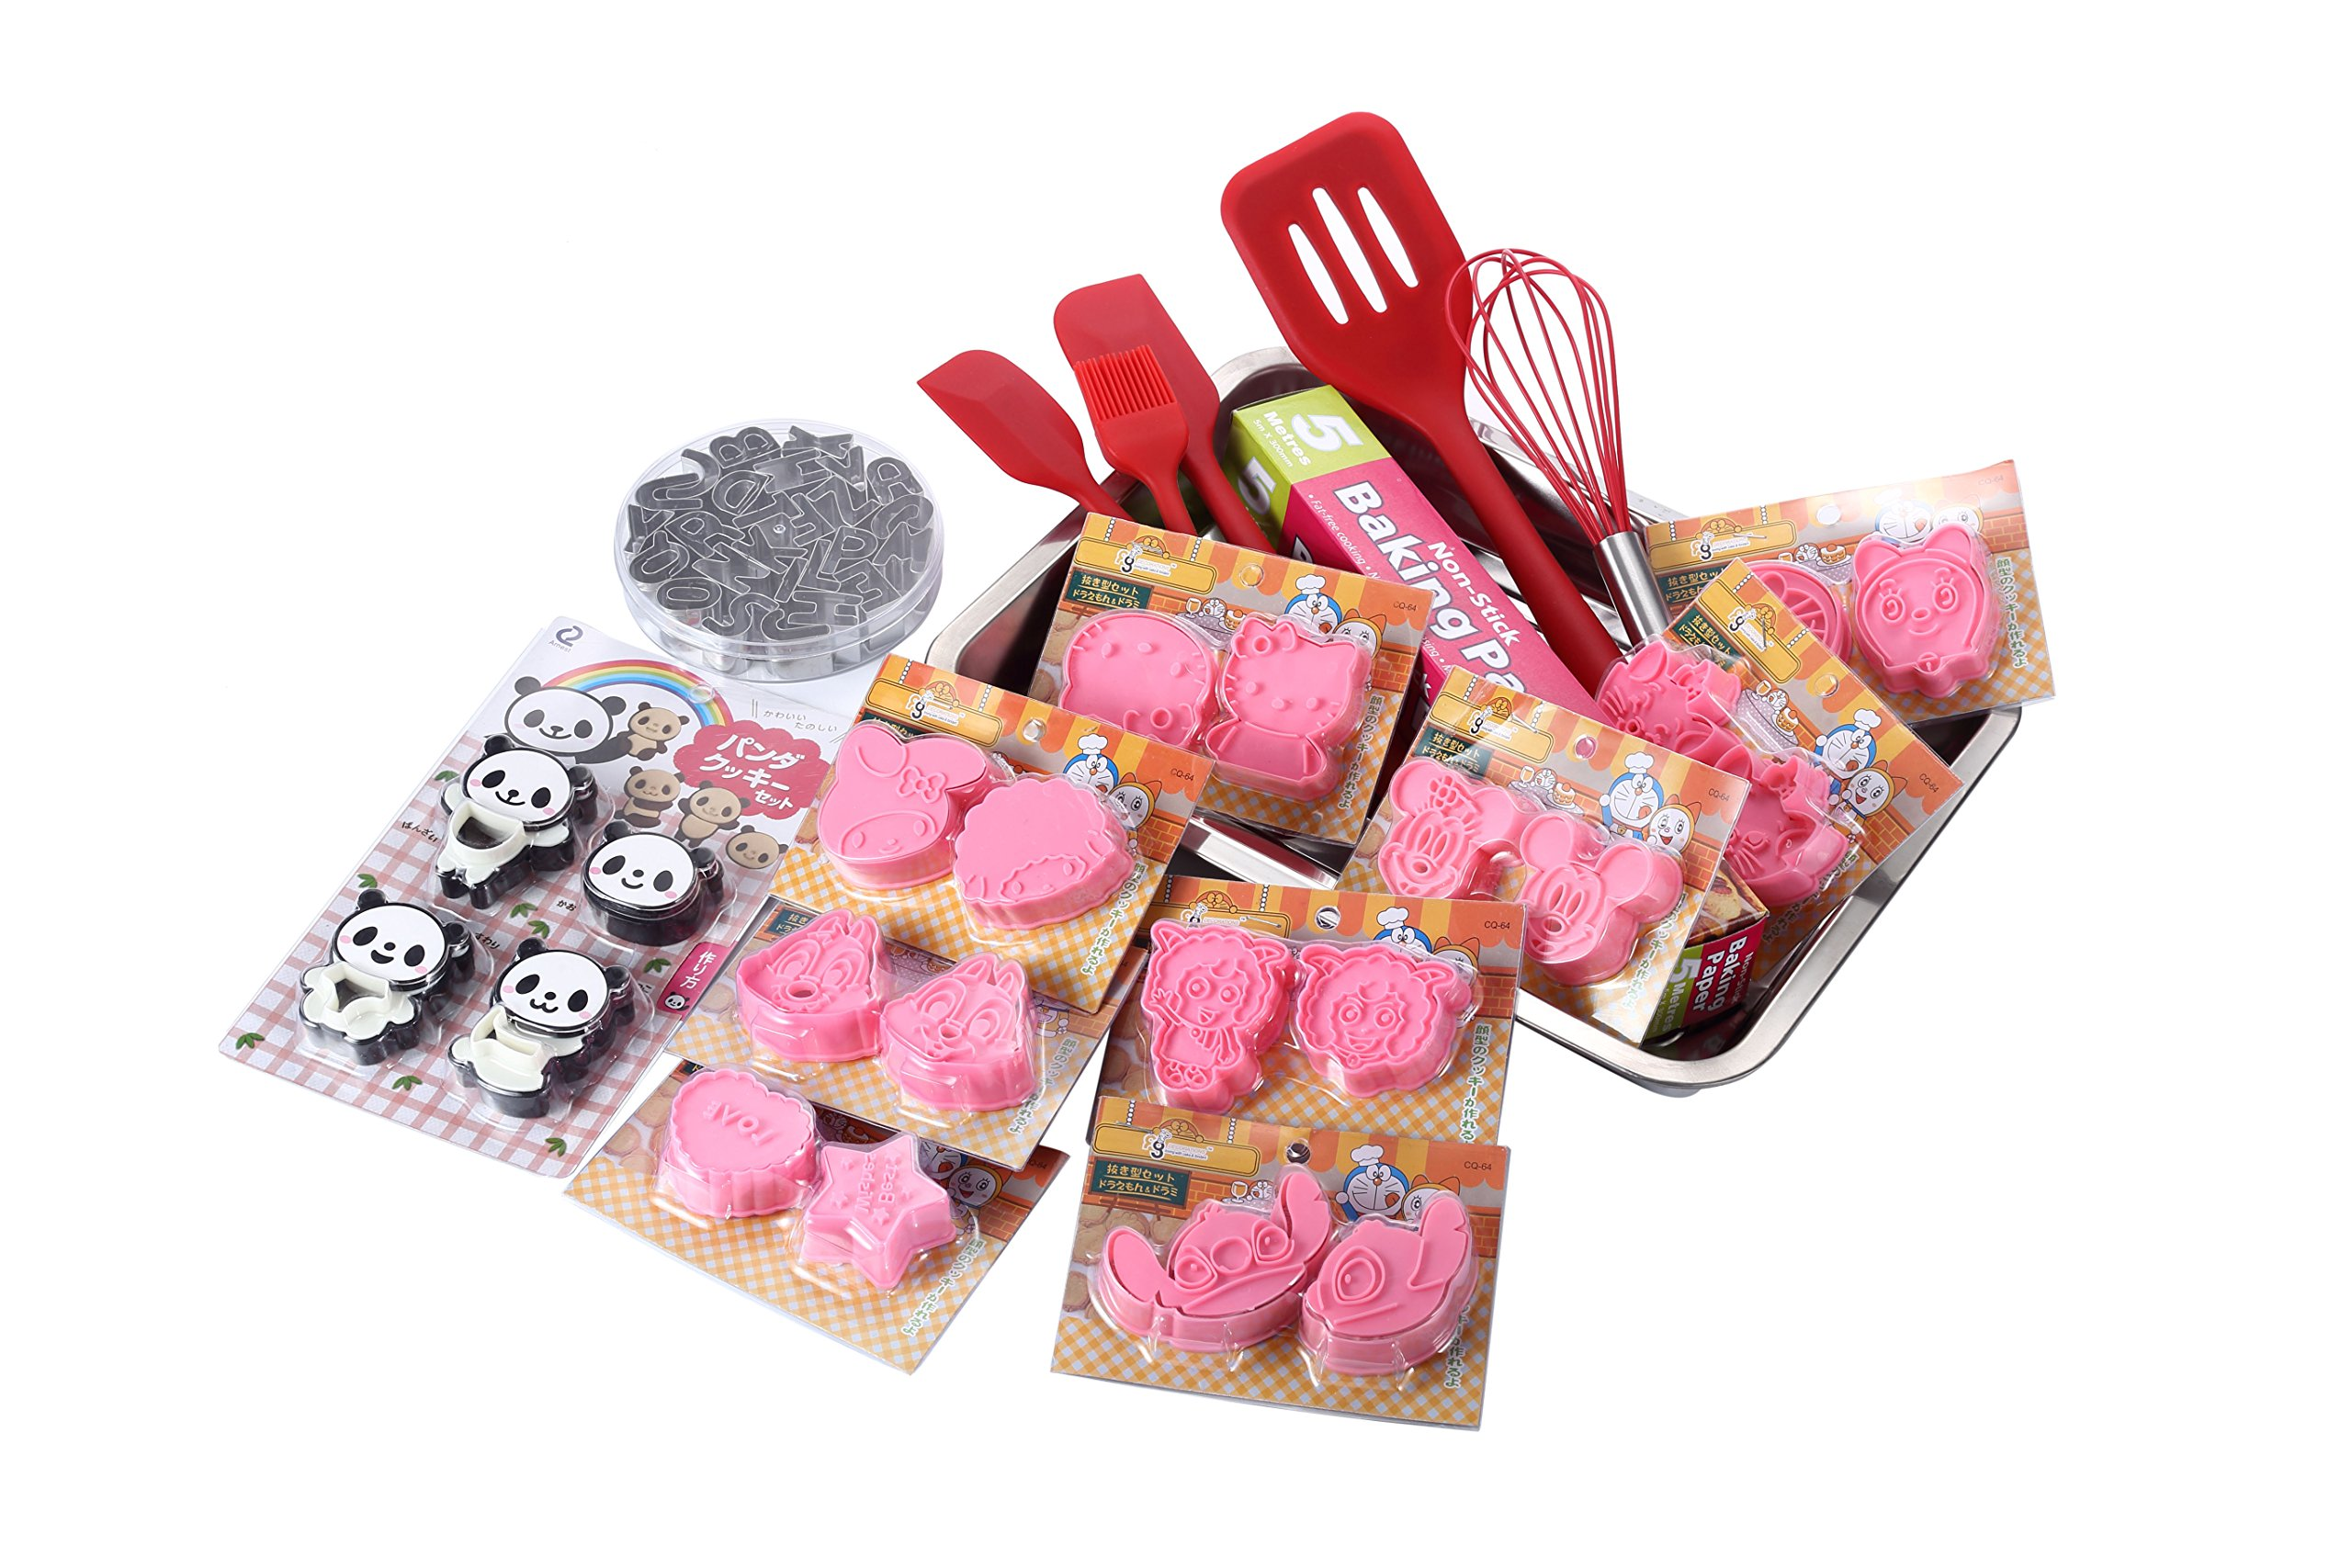 Cookie Kit 20+ Assorted Character Molds 5 piece Silicone Utensils Alphabet Molds Non-Stick Paper and Pan